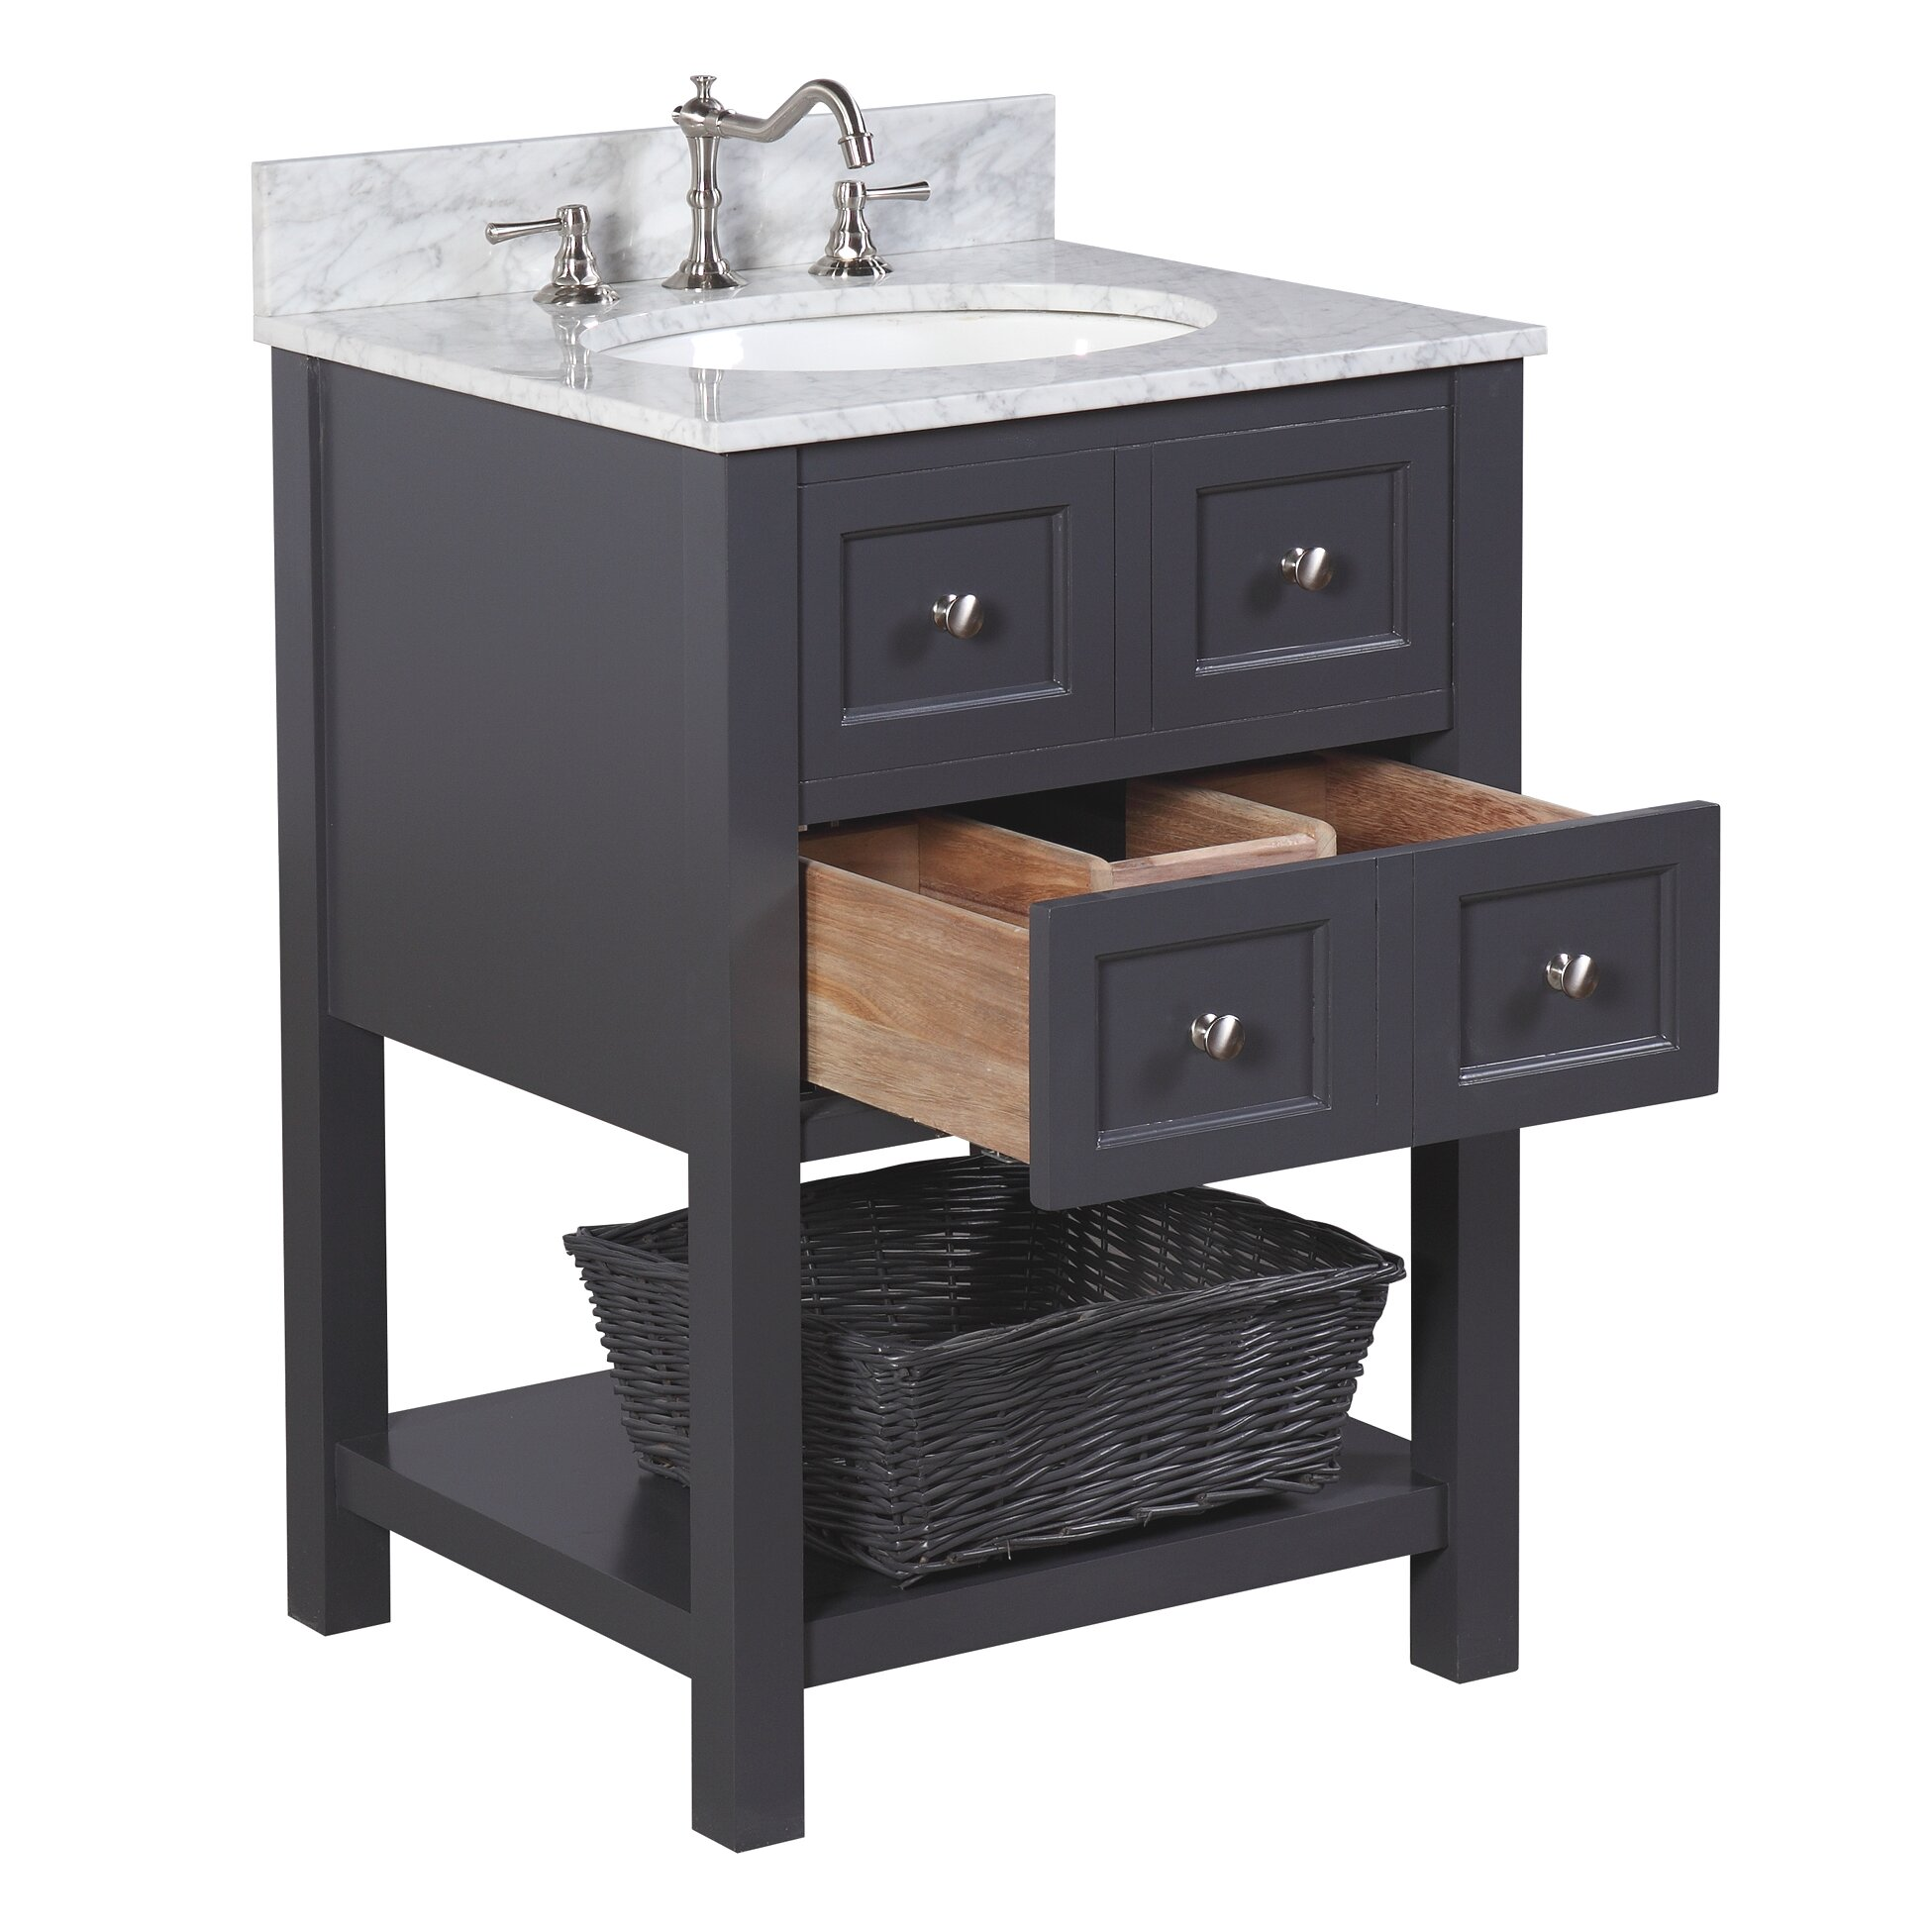 Kbc new yorker 24 single bathroom vanity set reviews for Bath and vanity set